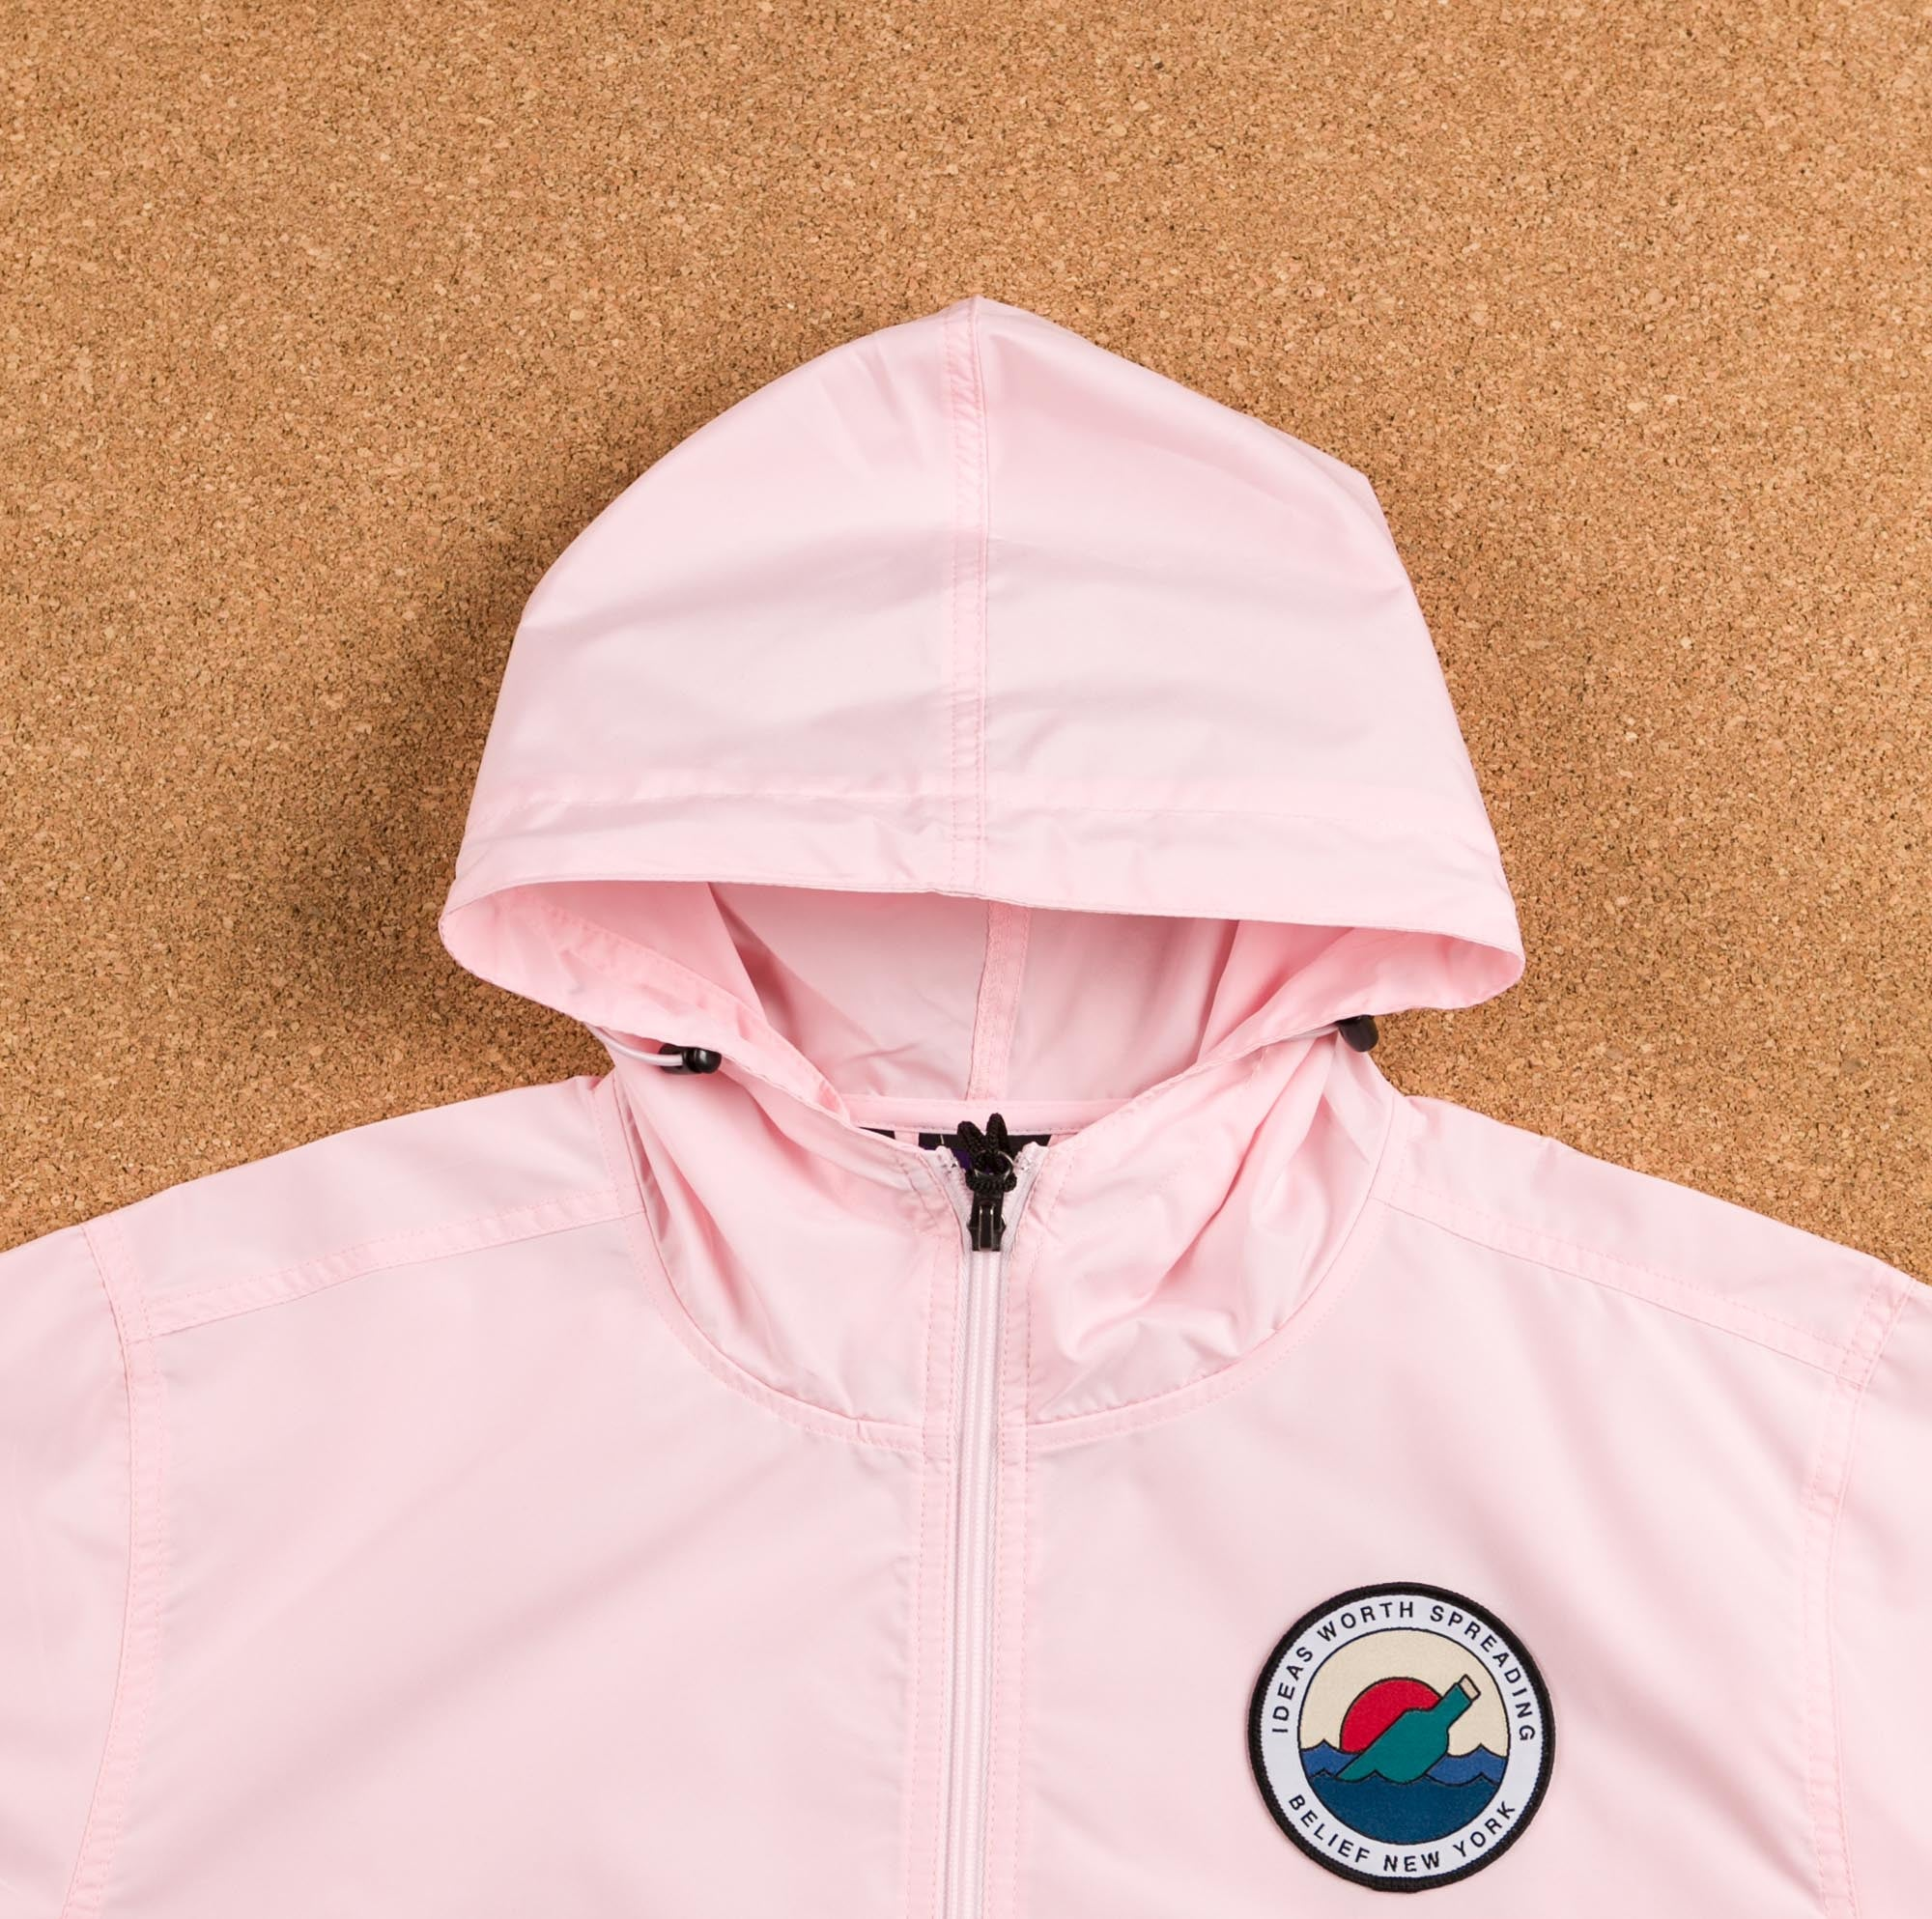 Belief Message Windbreaker Jacket - Soft Pink